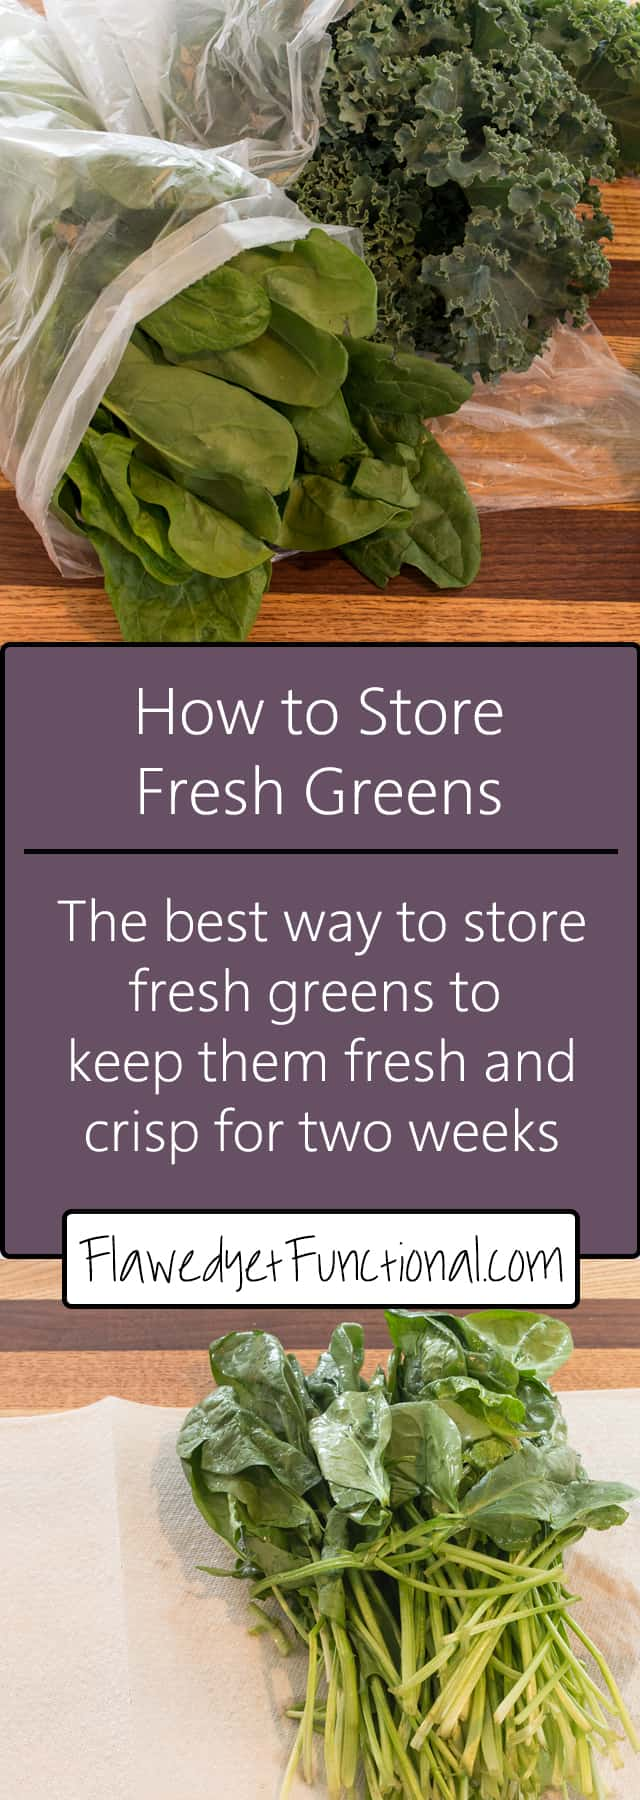 Maximize Fresh Produce | How to Store Leafy Greens